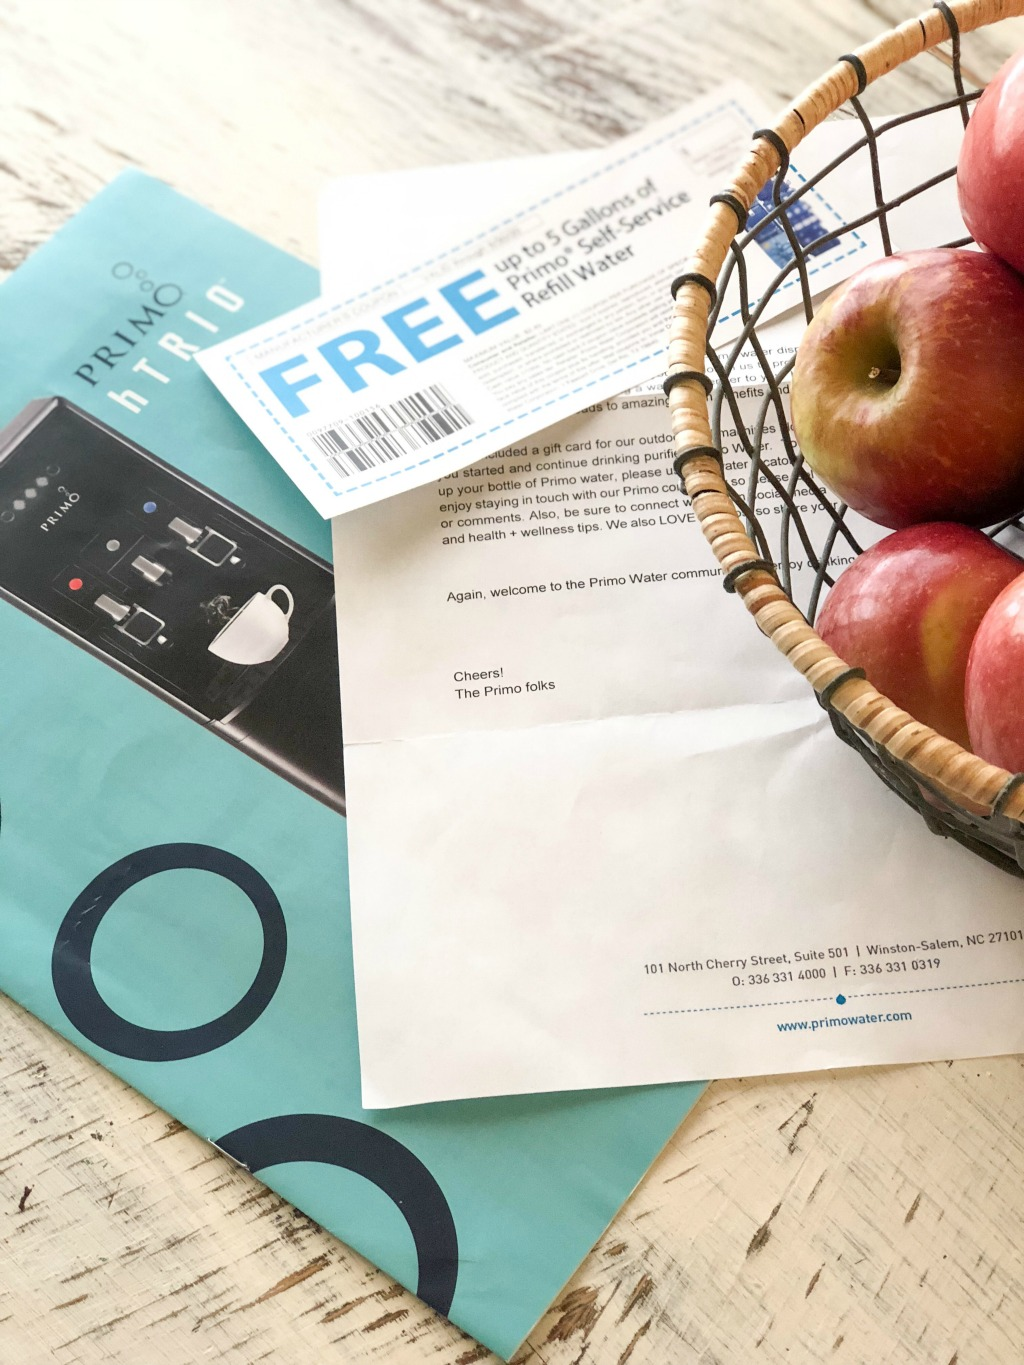 primo water coupons on kitchen table with bowl of red apples